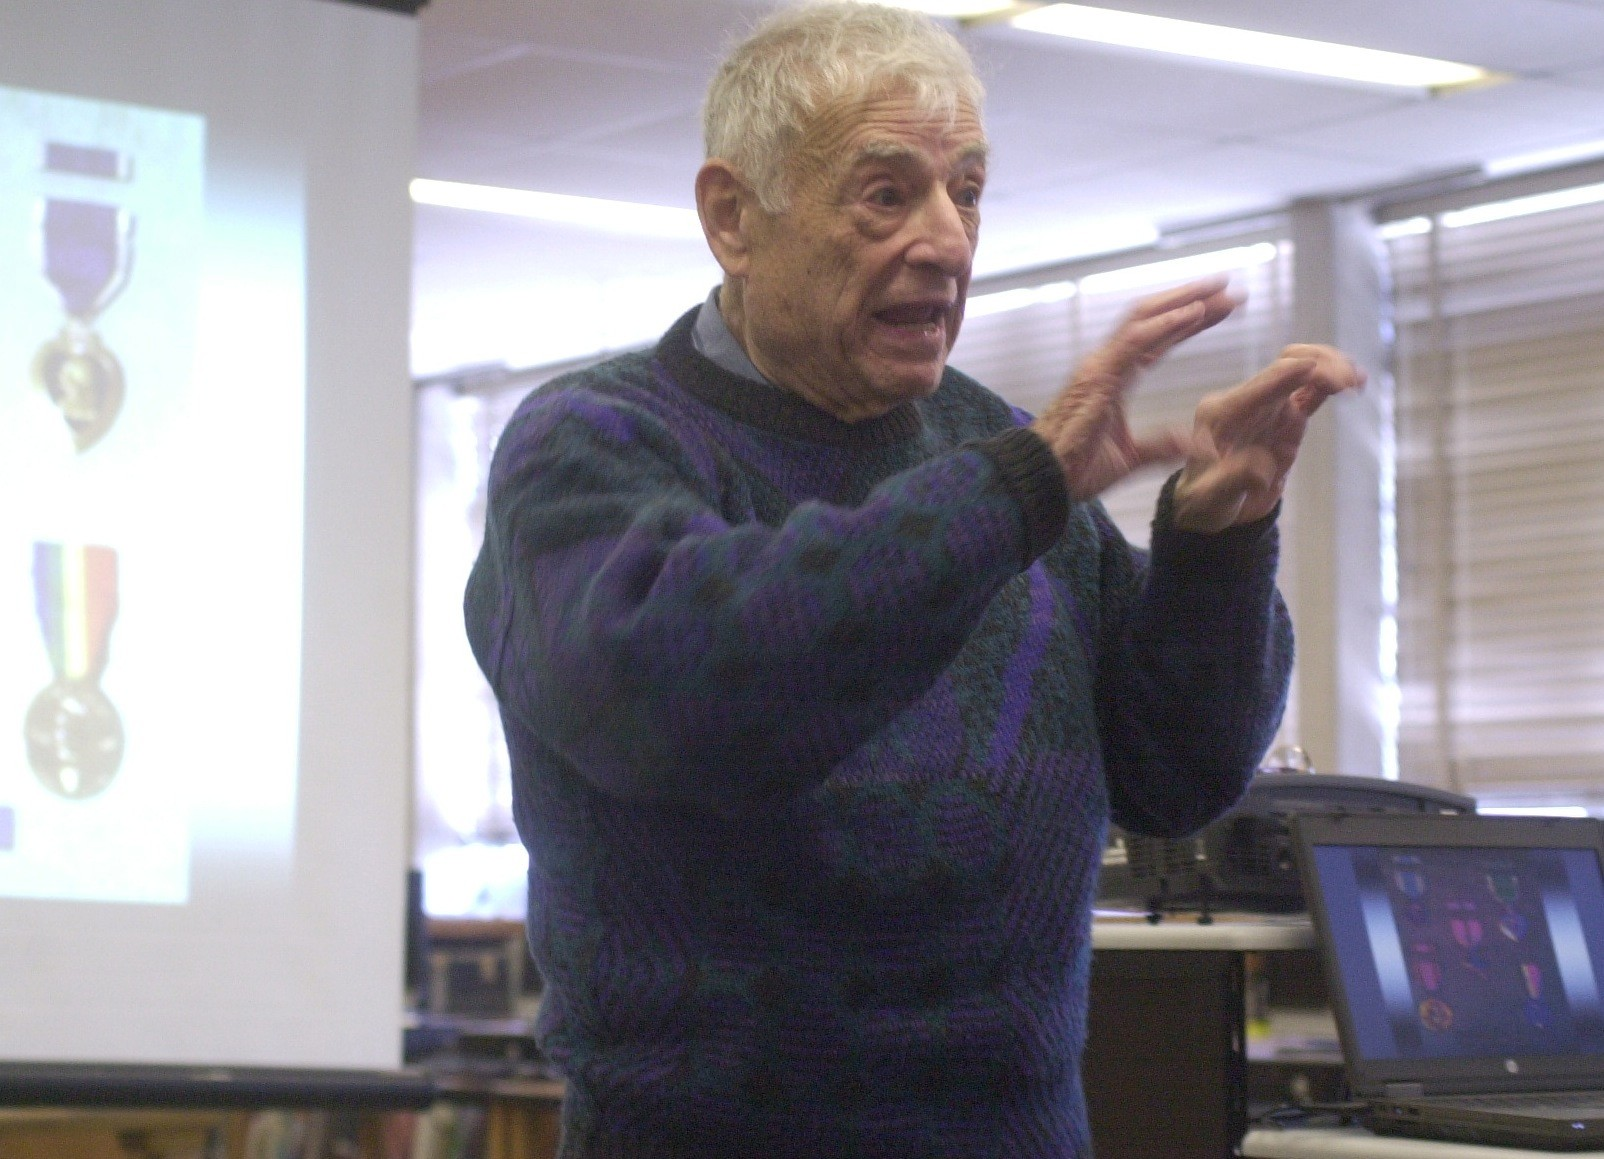 World War II hero Bernard Rader of Freeport delivered a talk about his harrowing experiences in battle at Kennedy High School in Bellmore last Wednesday.